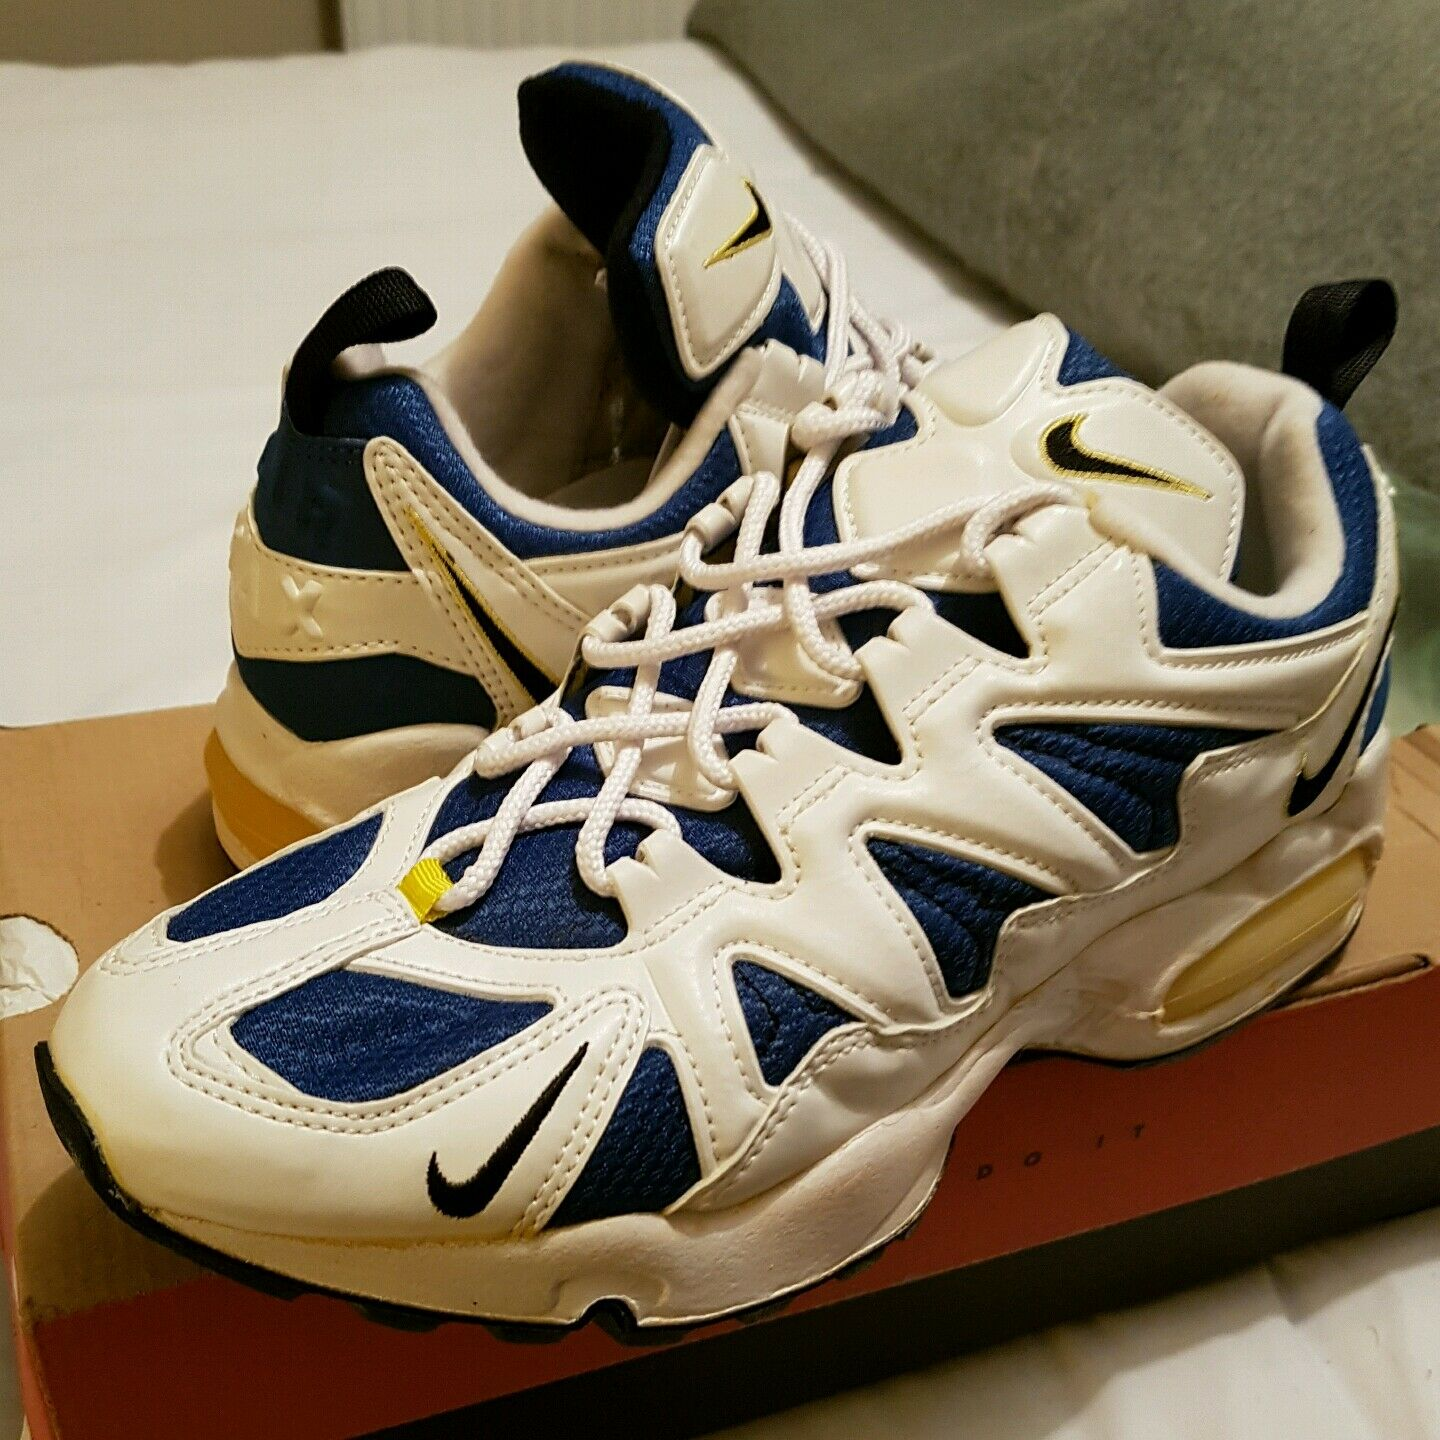 timeless design 62546 d3fc9 85%OFF nike air max tailwind 96 extremely rare vintage uk 8. sole swap